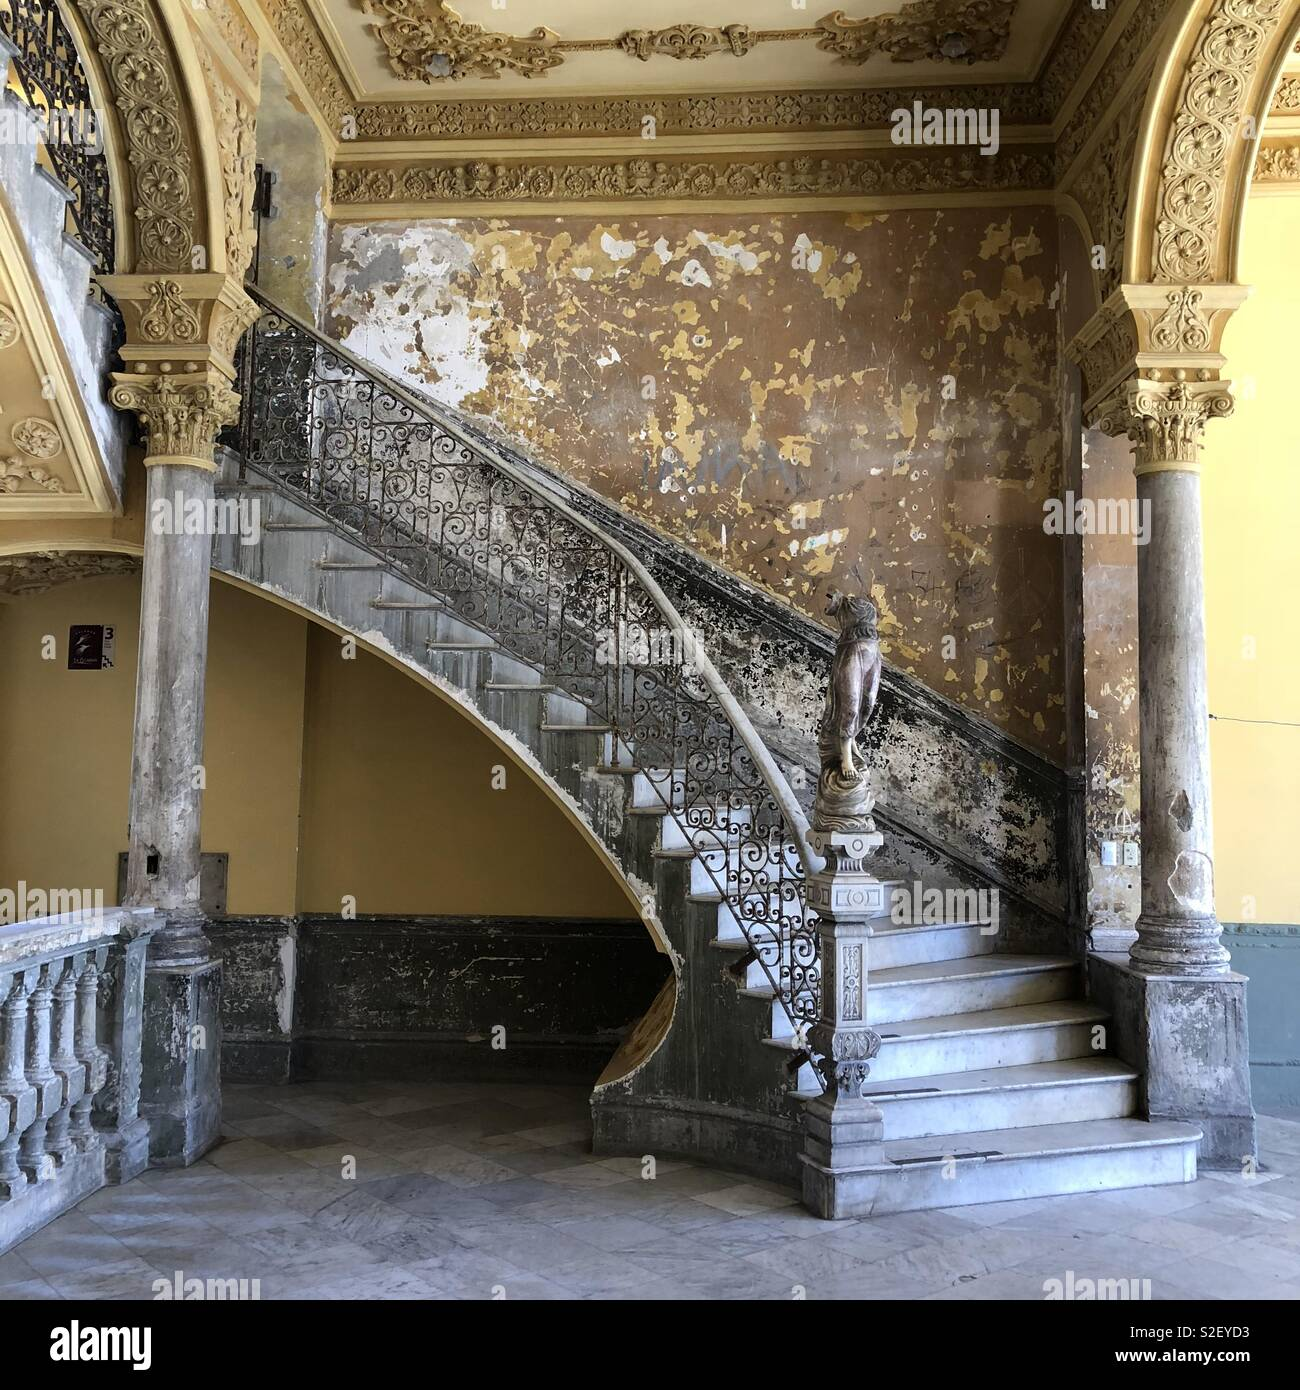 The staircase leading to La Guarida restaurant, a paladar in a classic Cuban apartment building in Havana, Cuba. - Stock Image